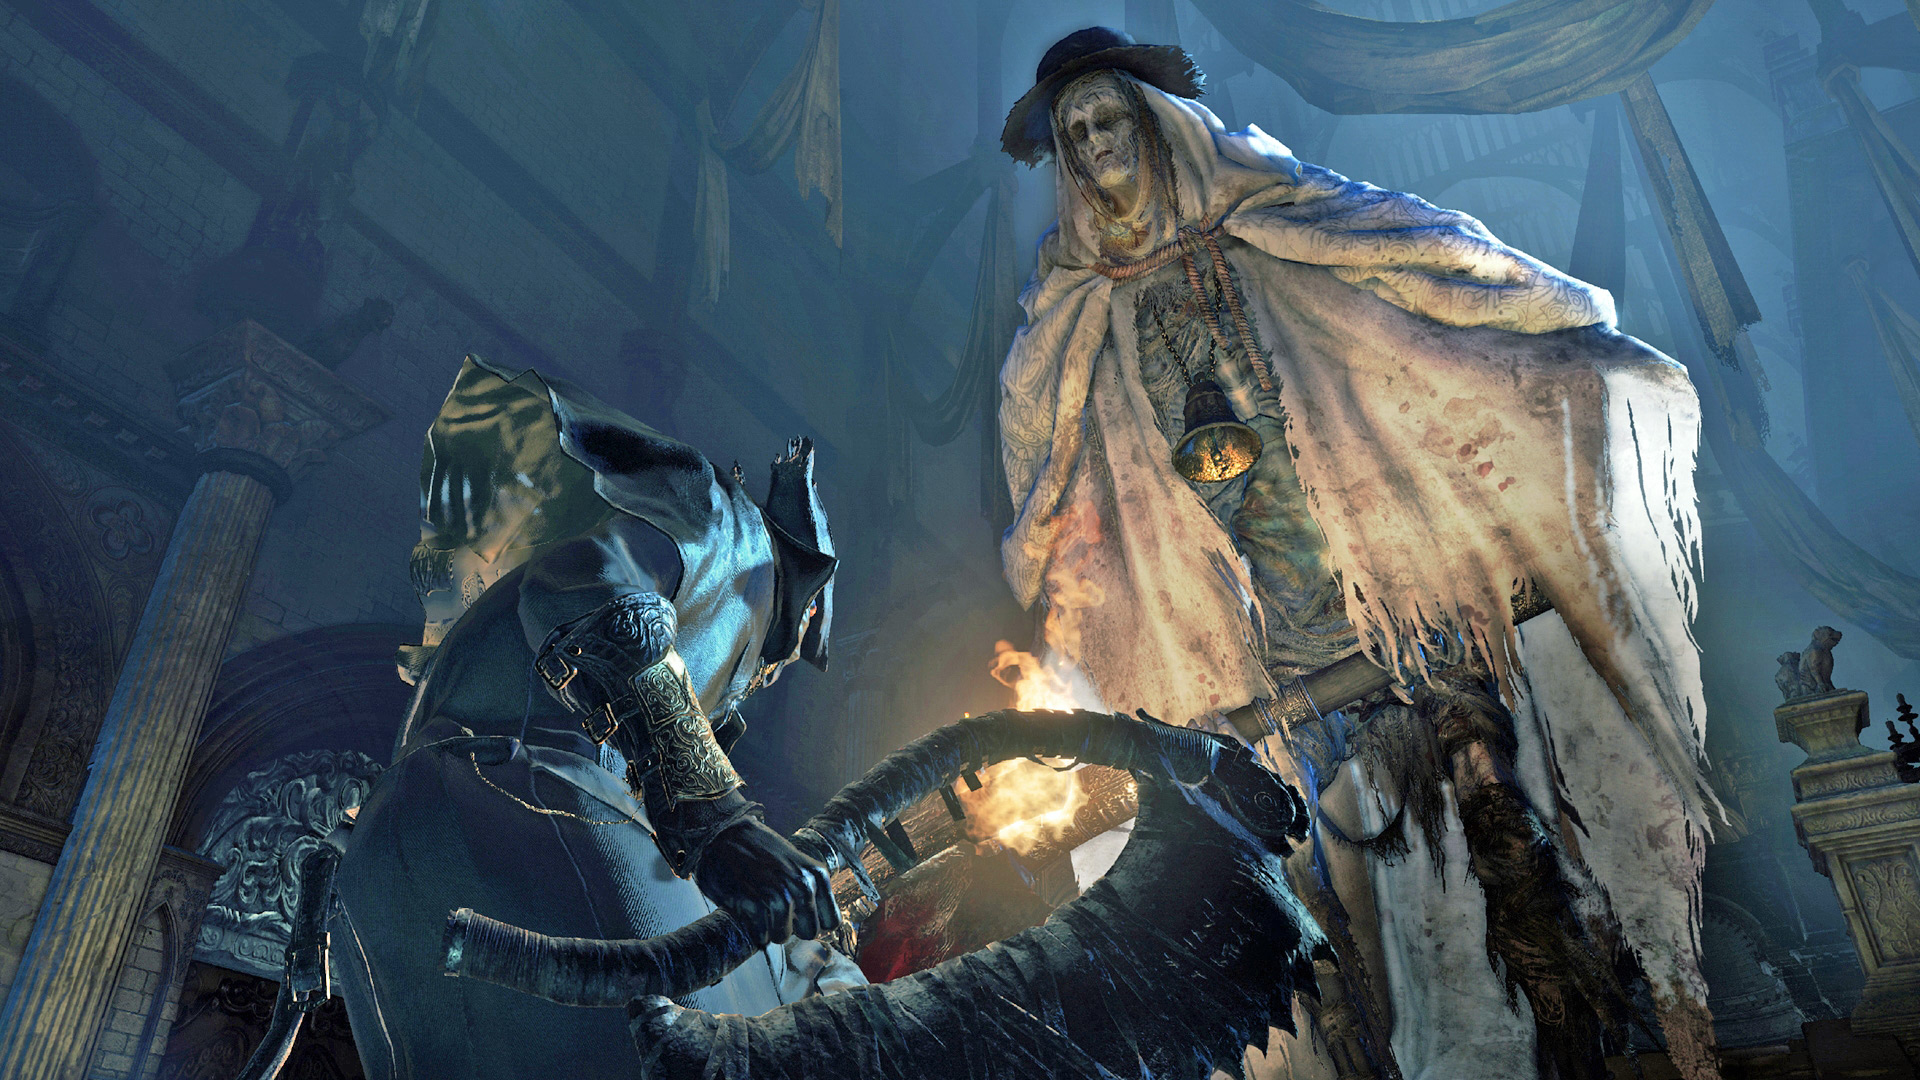 Sony afirma que 2015 teve titulos fracos-Bloodborne